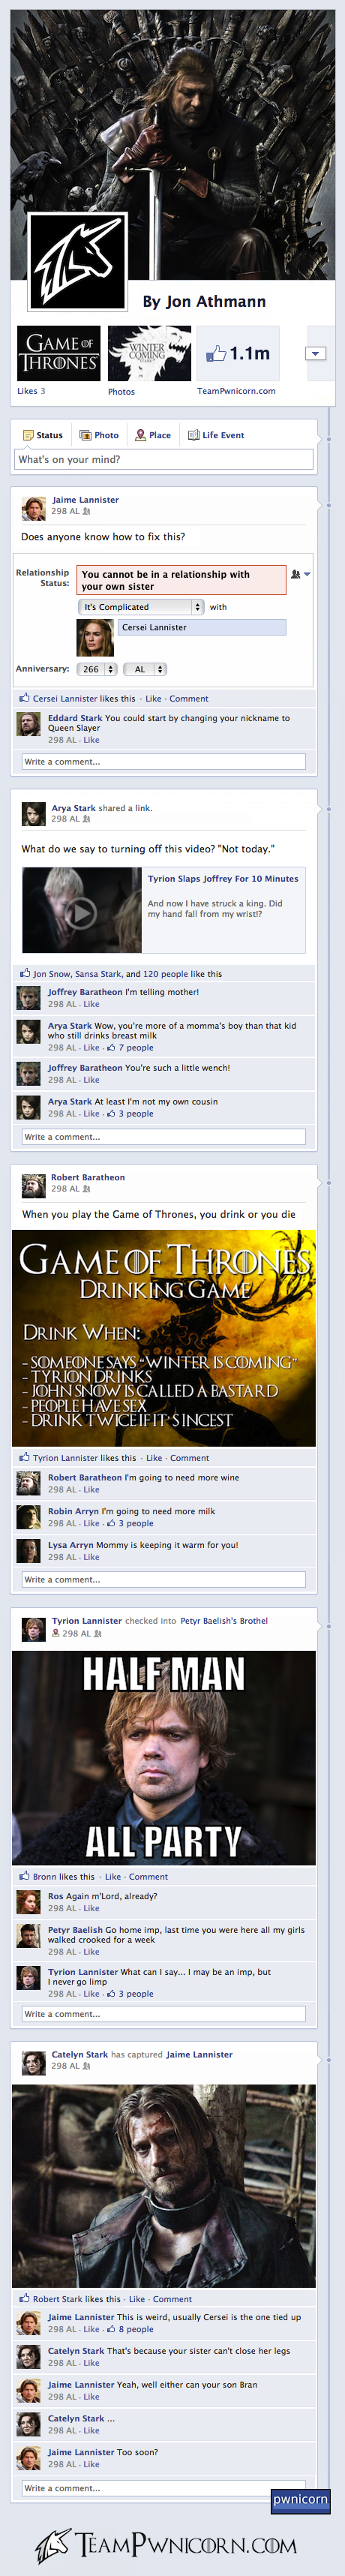 Game of thrones told through facebook posts humor parody